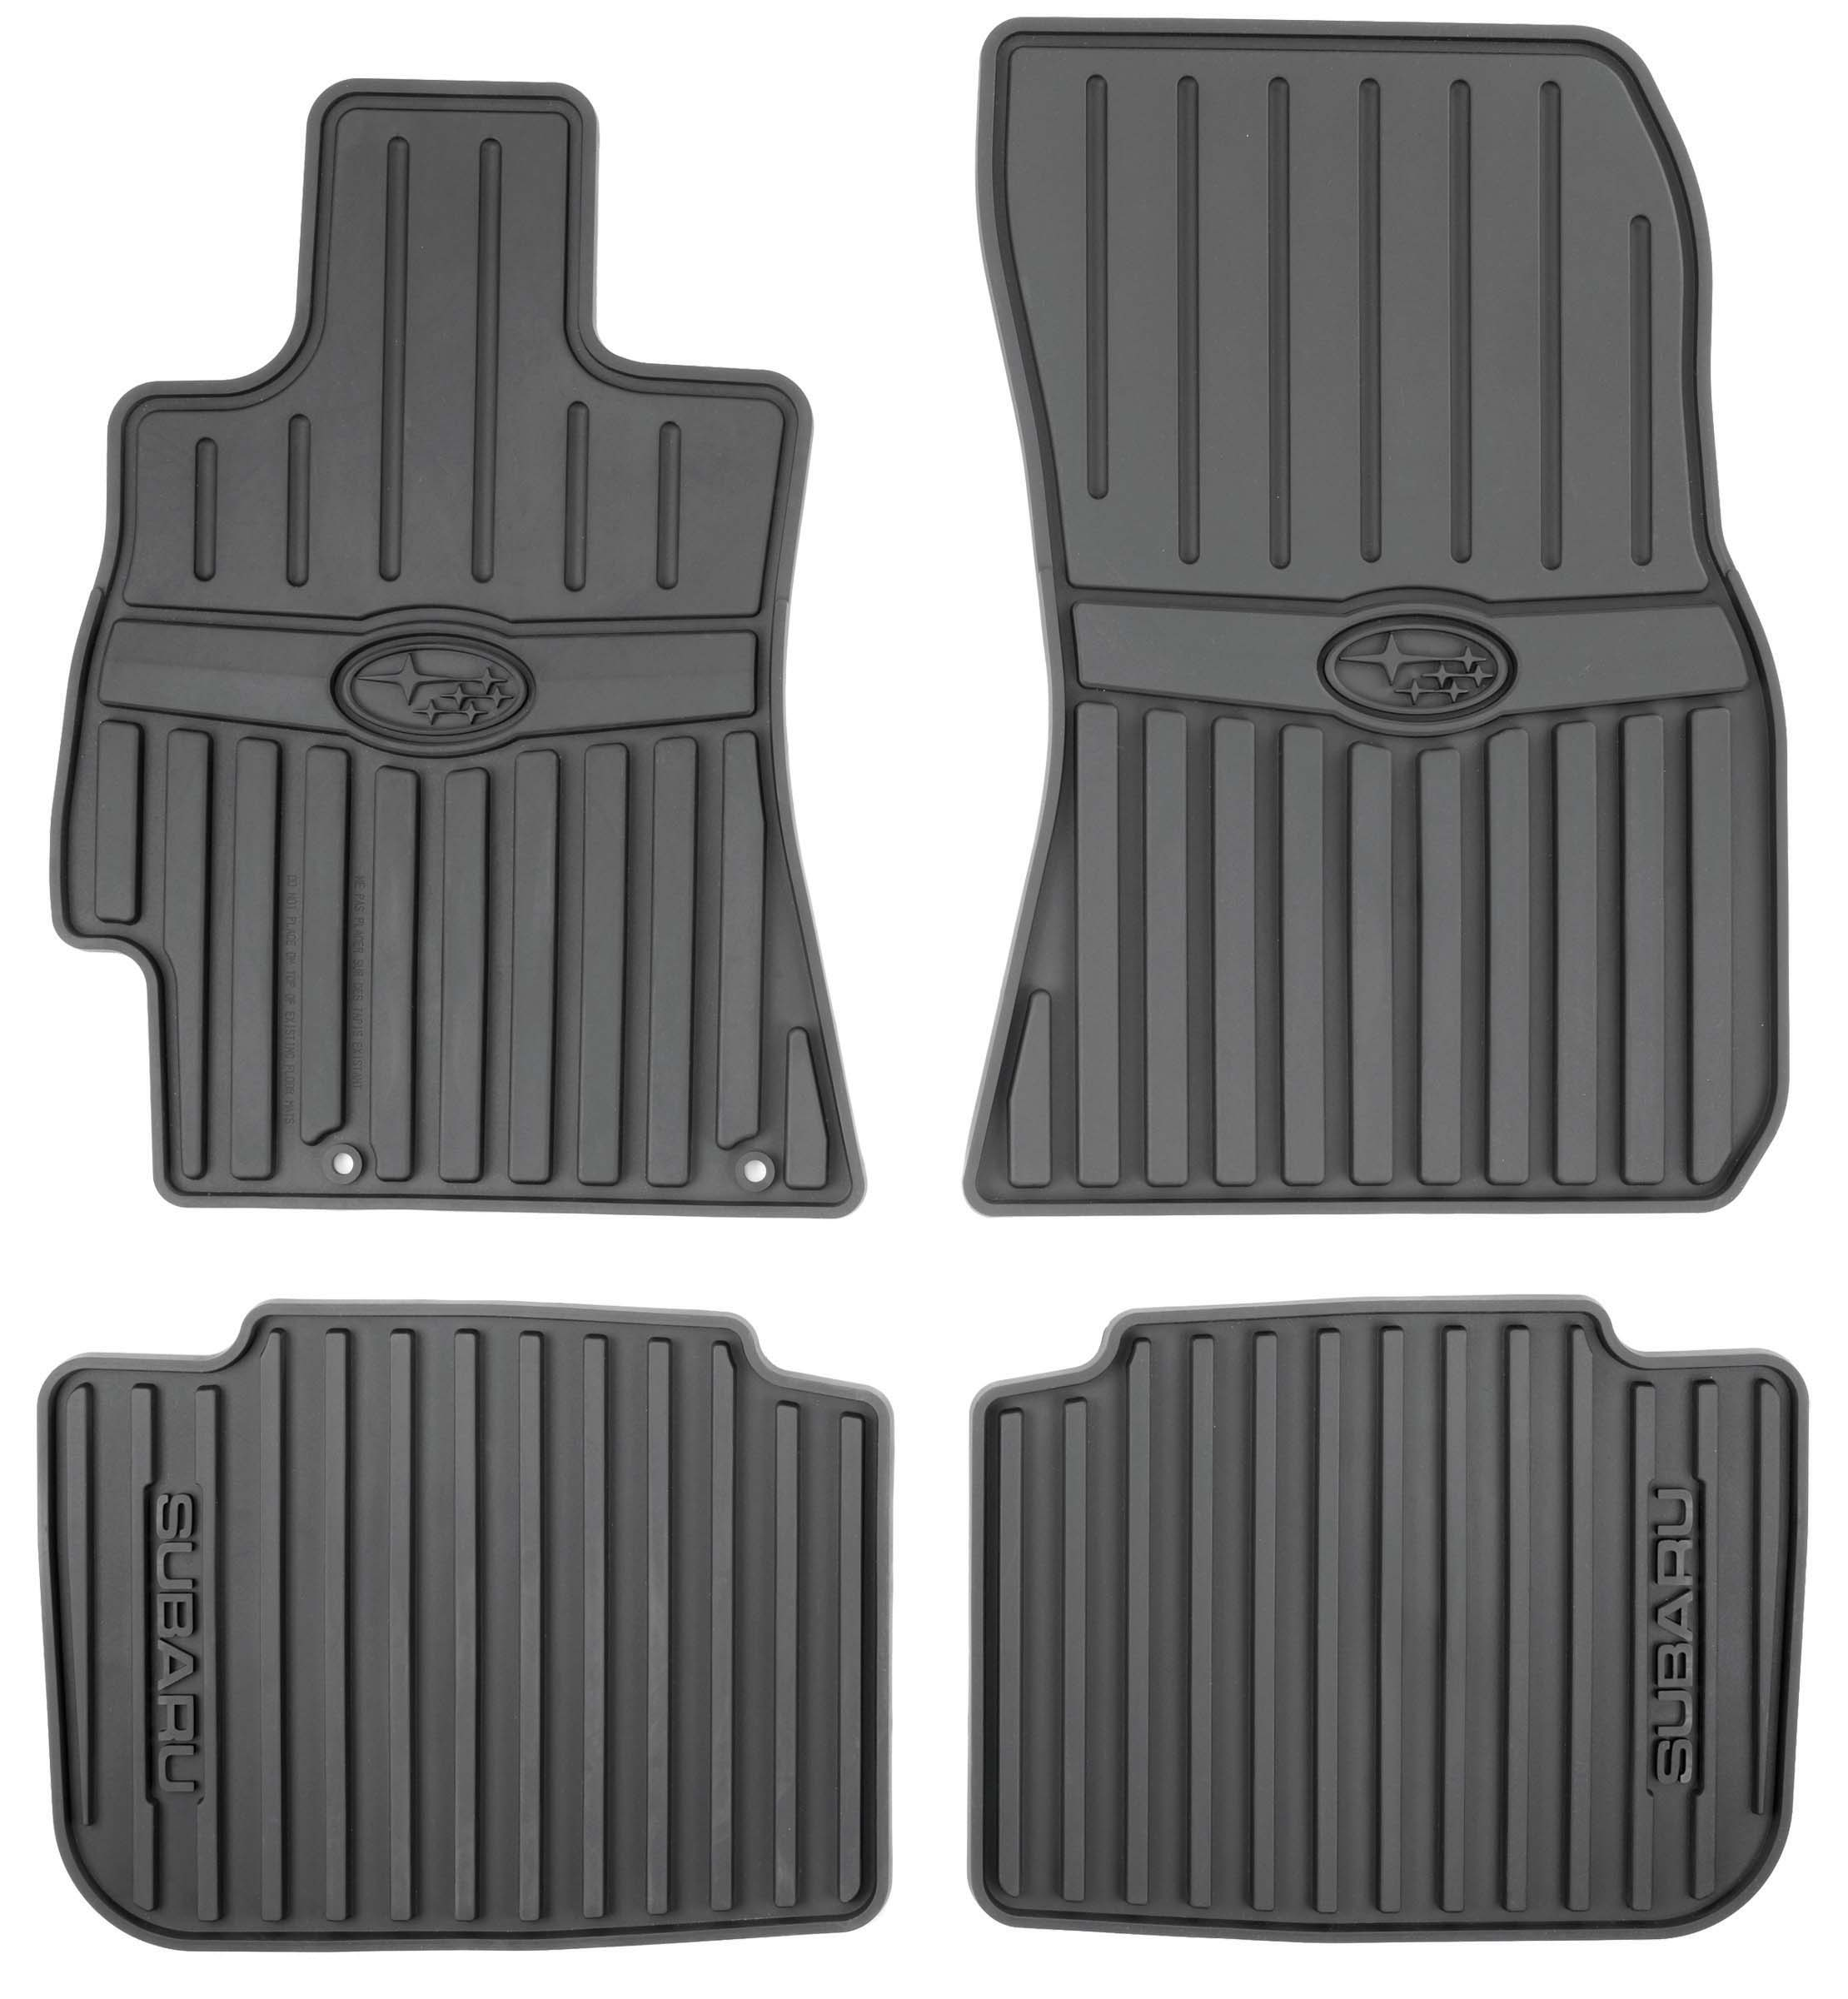 Subaru Outback Floor Mats: All Weather-set Of 4. All